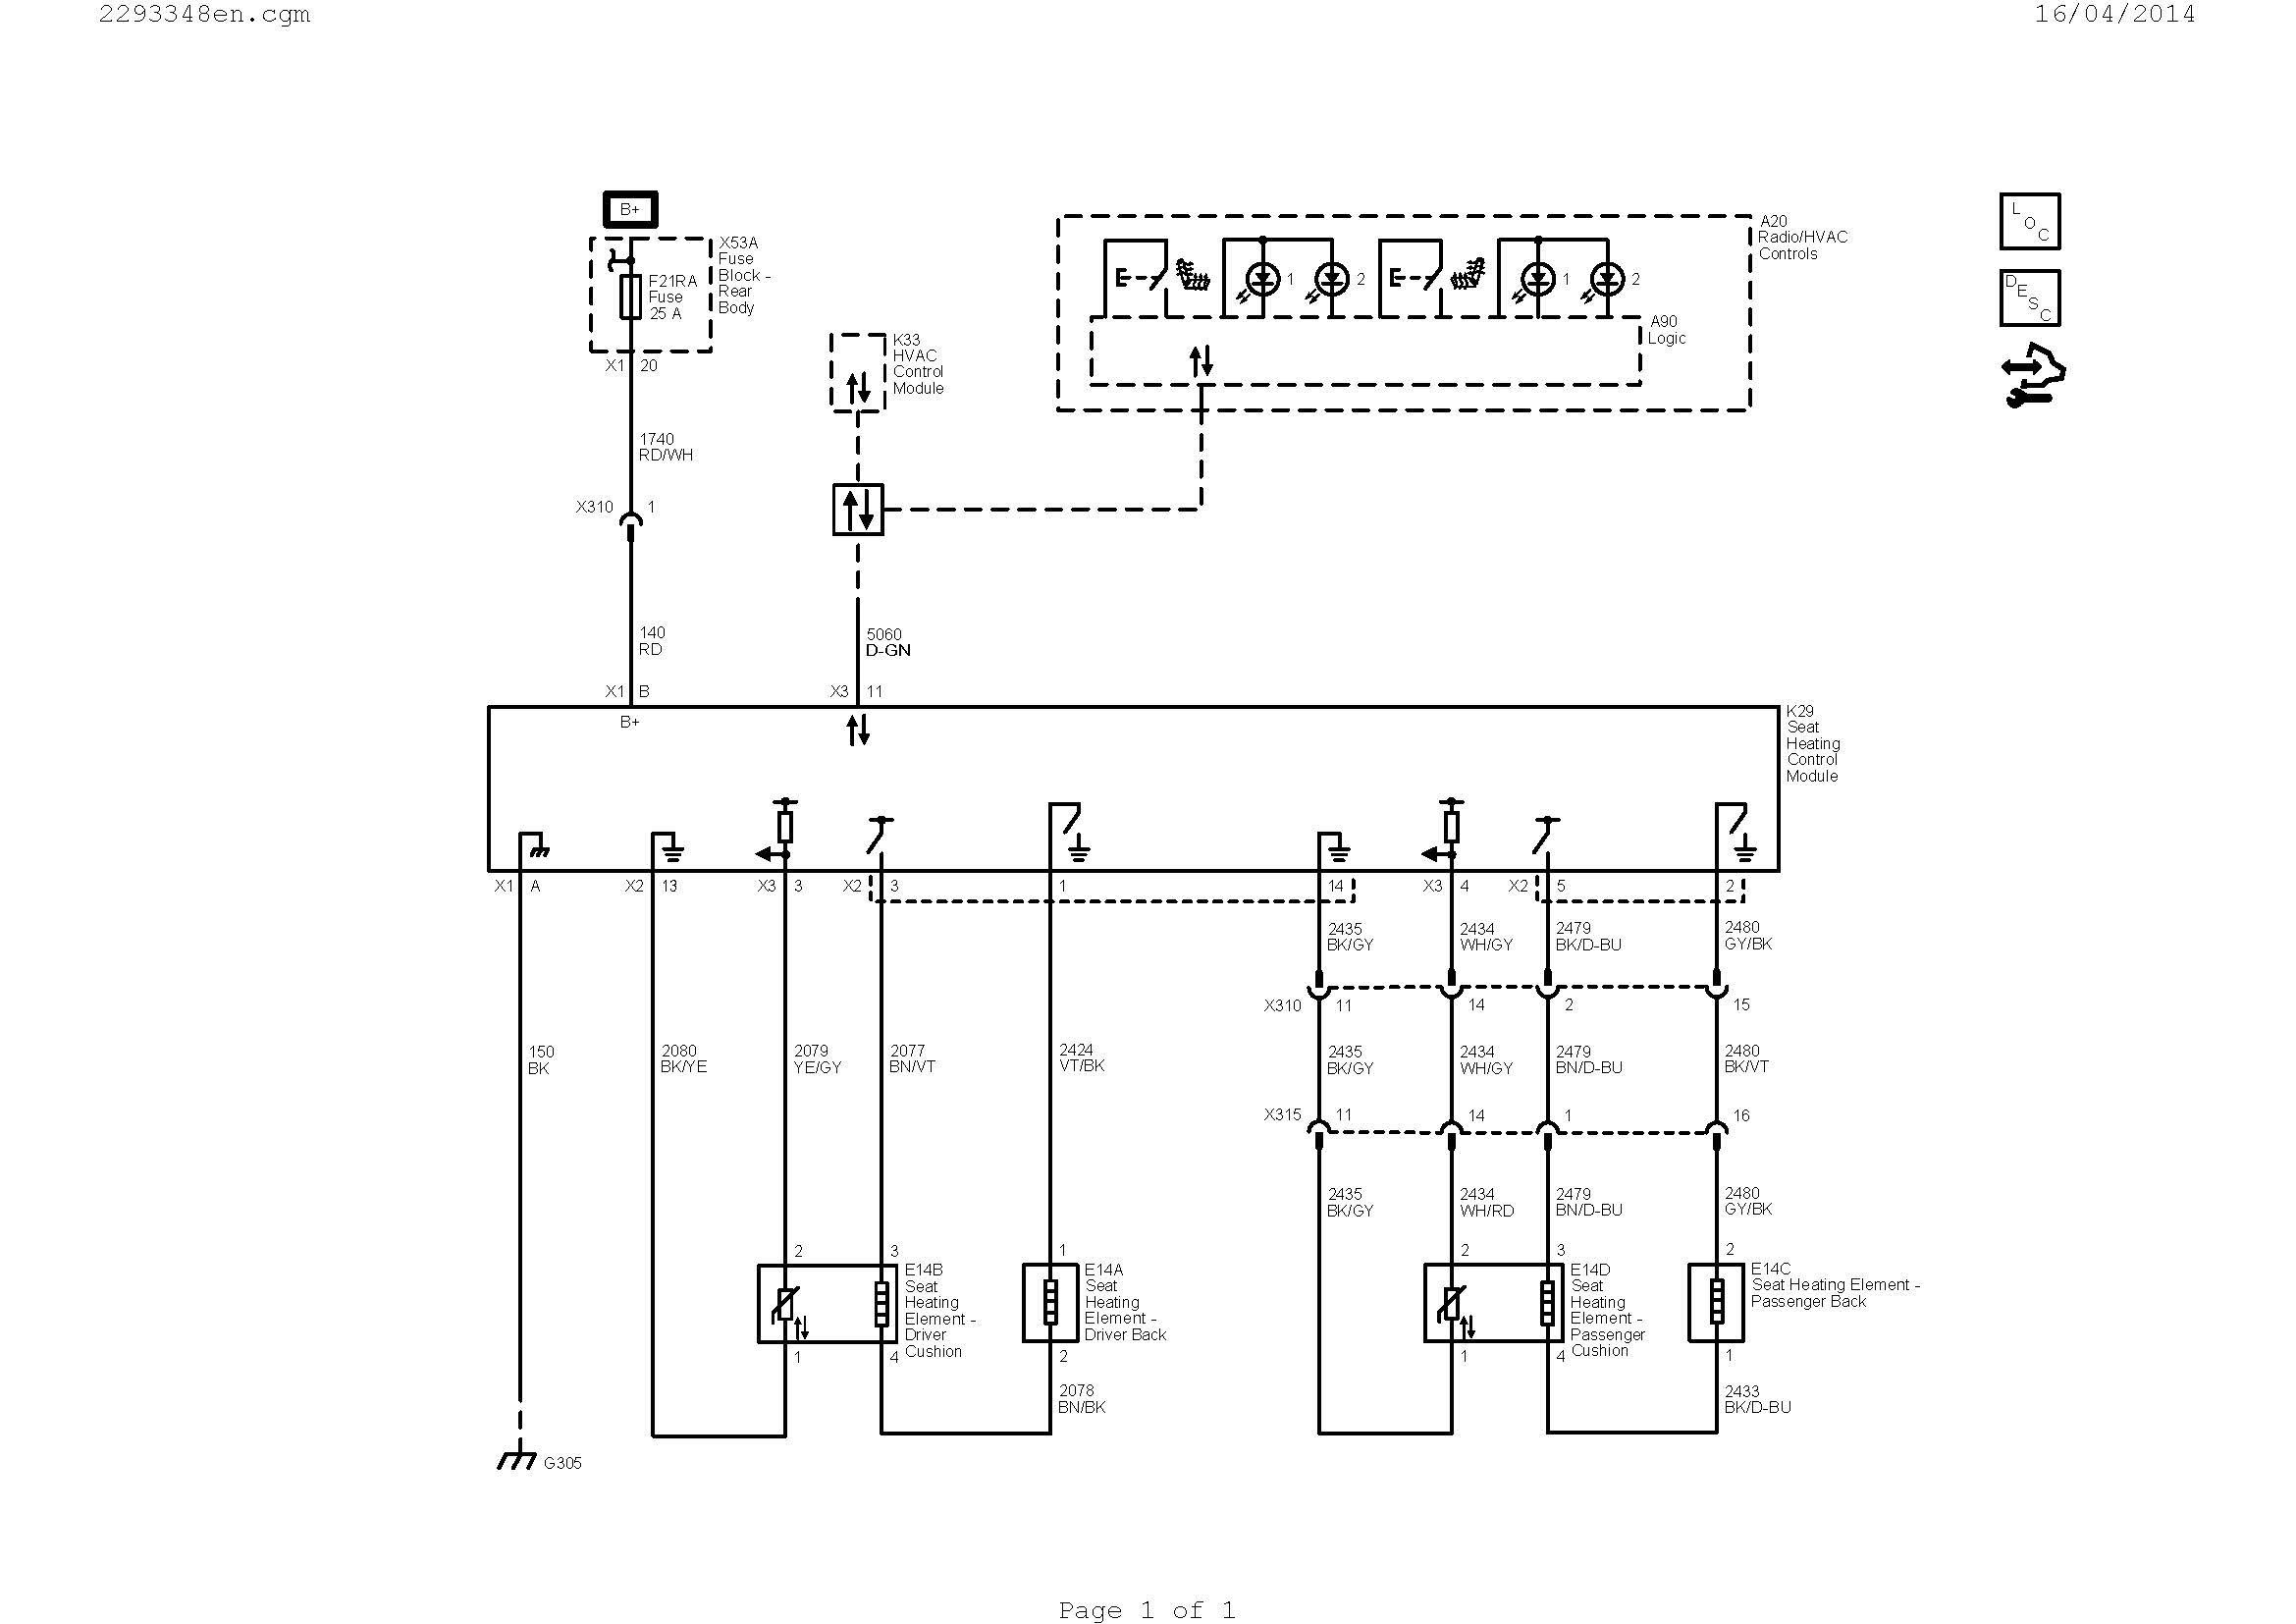 Wiring Diagram For Snow Dogg 16071150 - Wiring Diagram M2 on